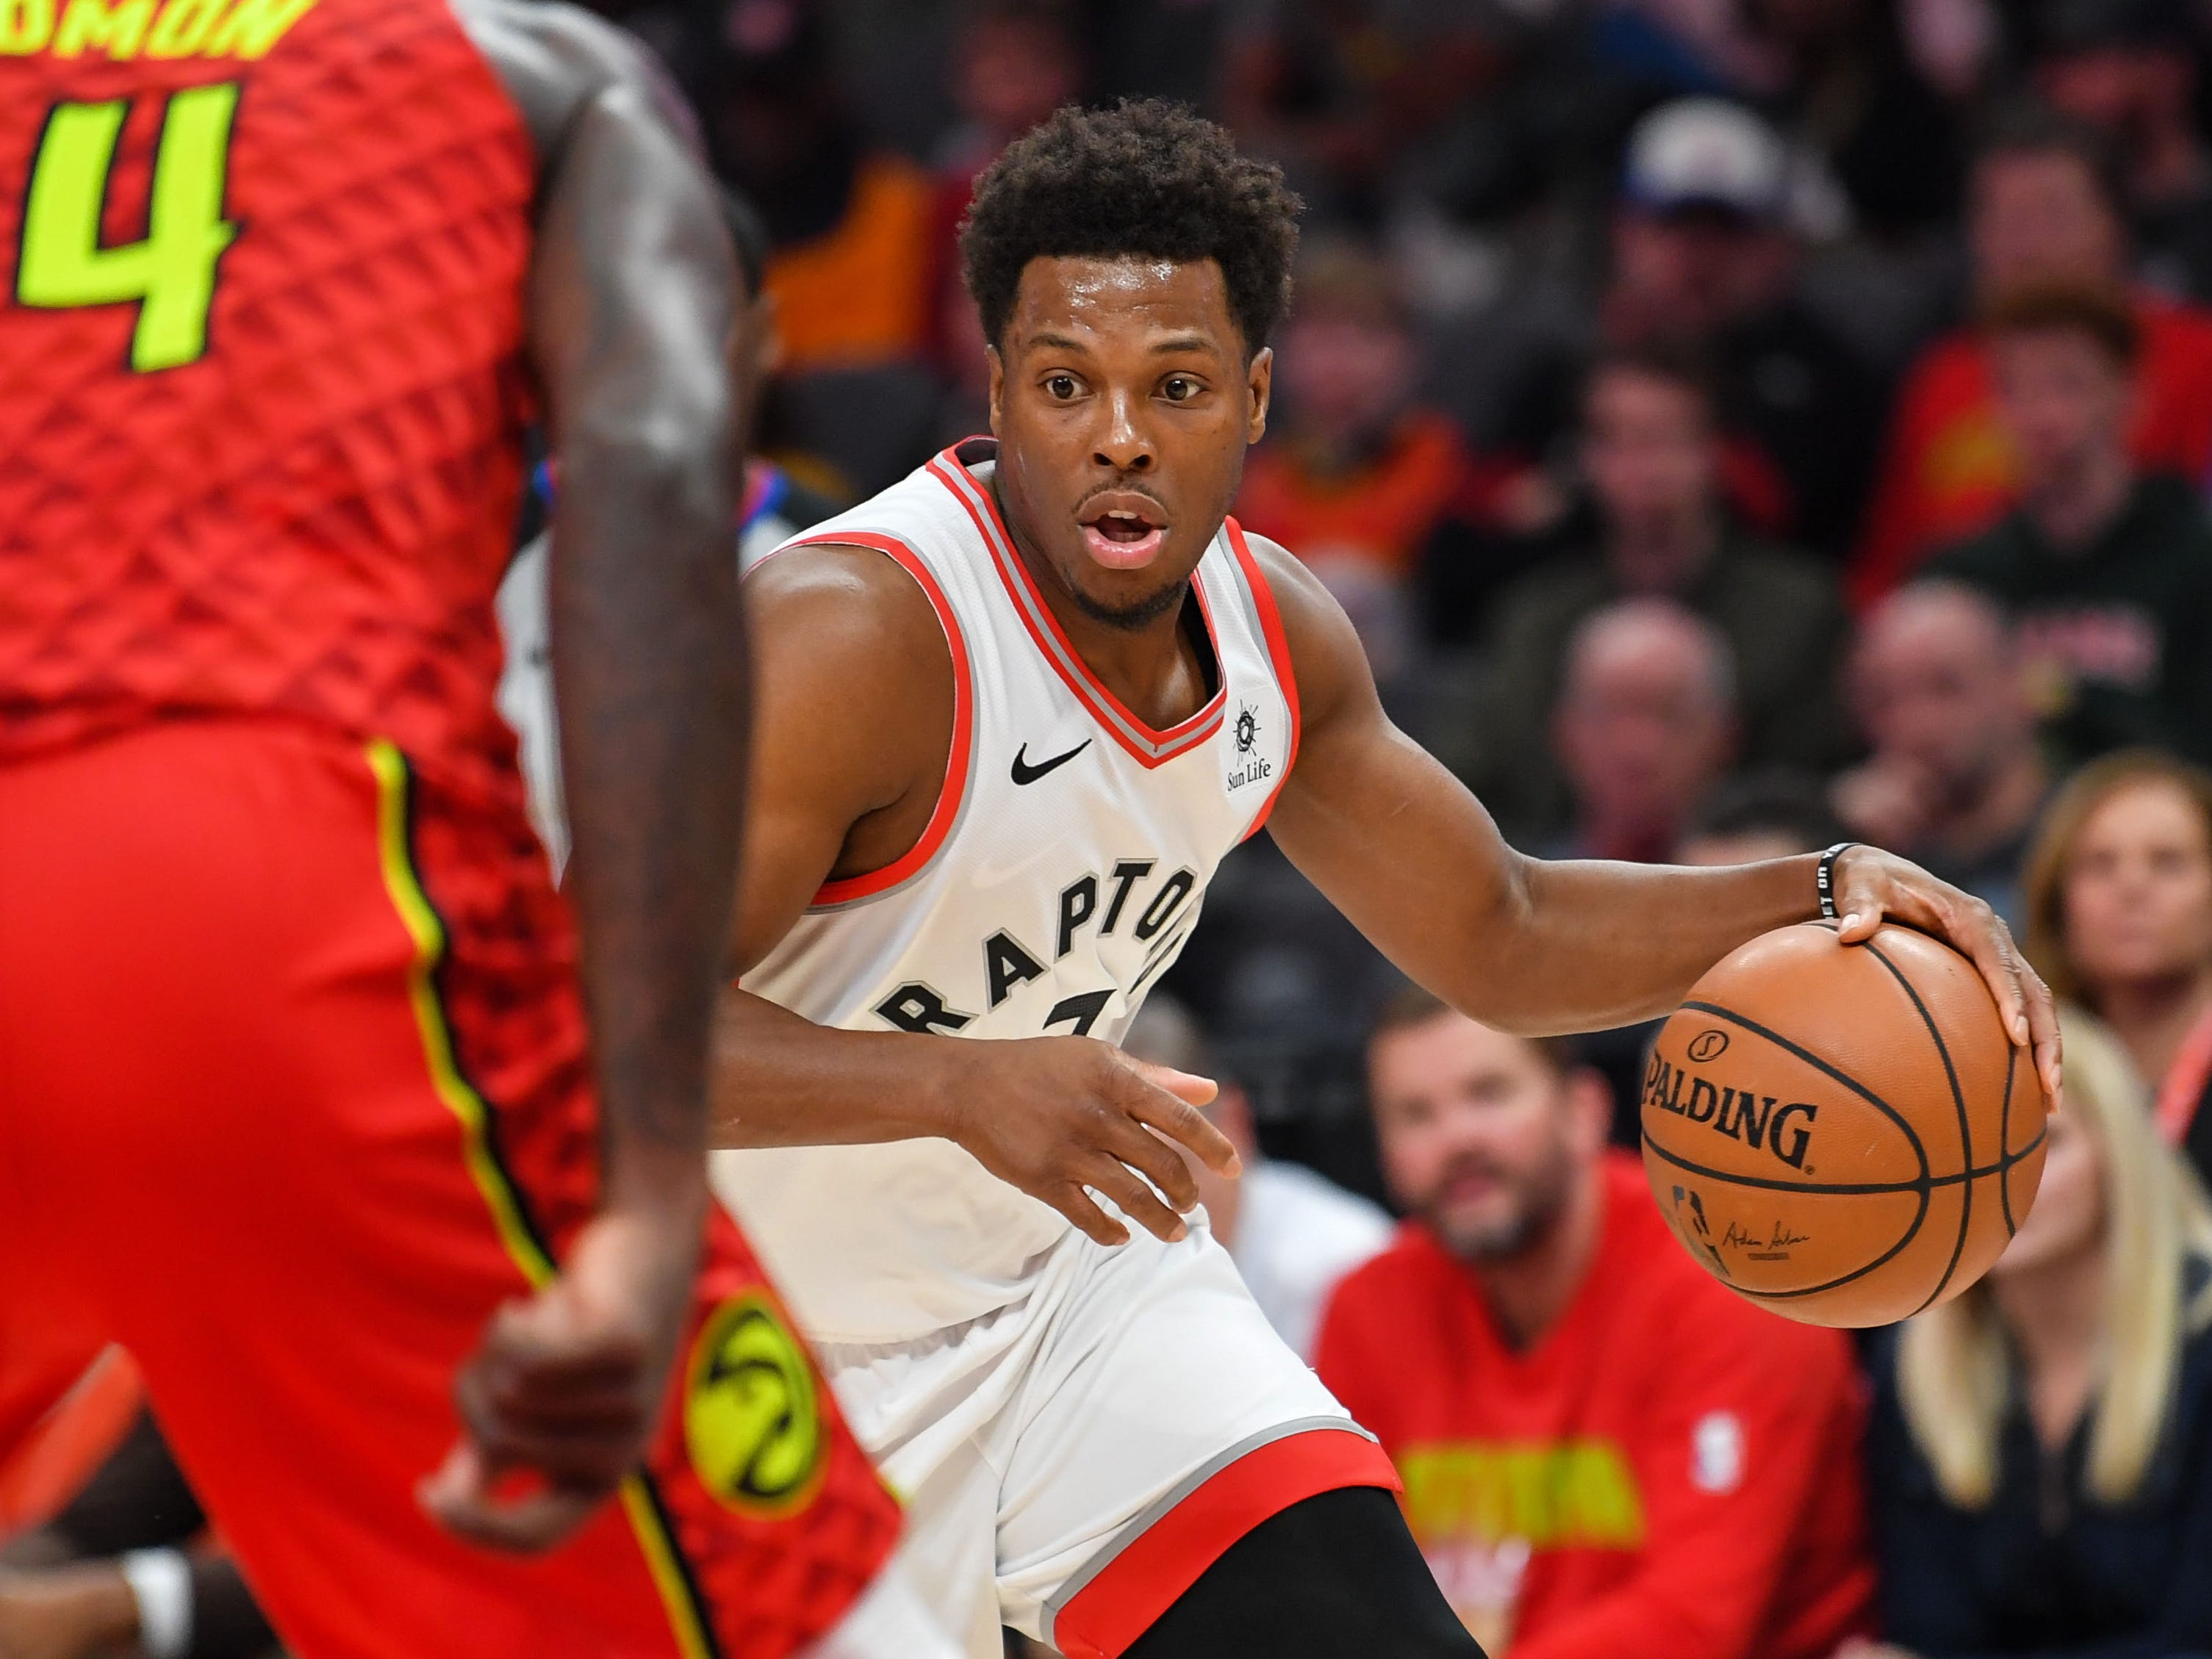 13. Kyle Lowry, Raptors (Nov. 21): 21 points, 17 assists, 12 rebounds in 124-108 win over Hawks.